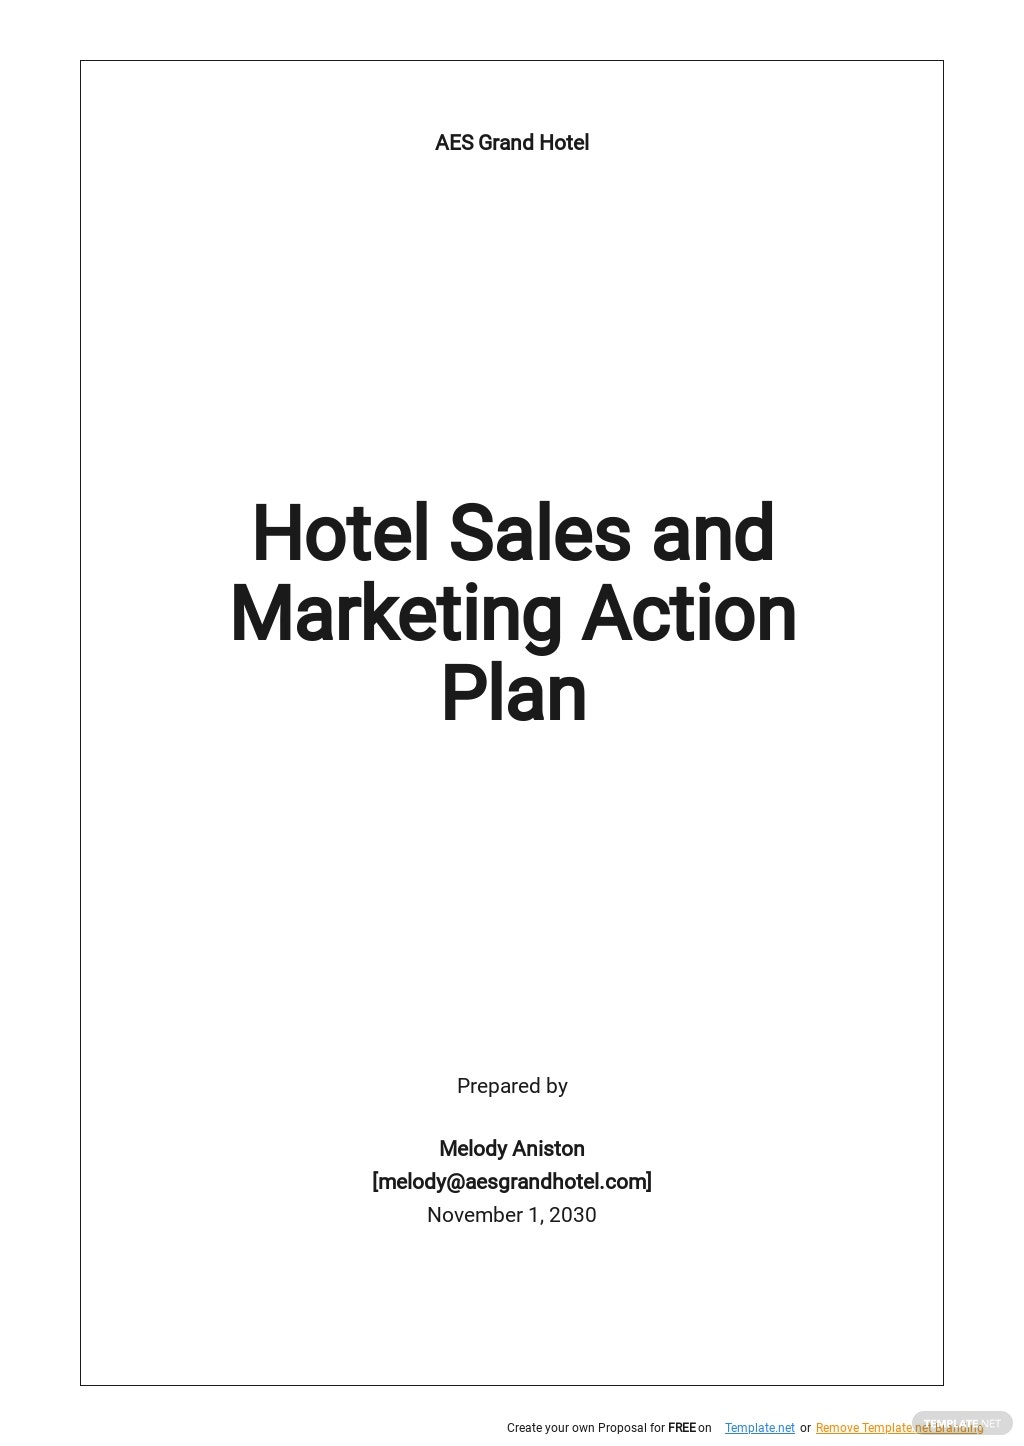 Hotel Sales and Marketing Action Plan Template.jpe